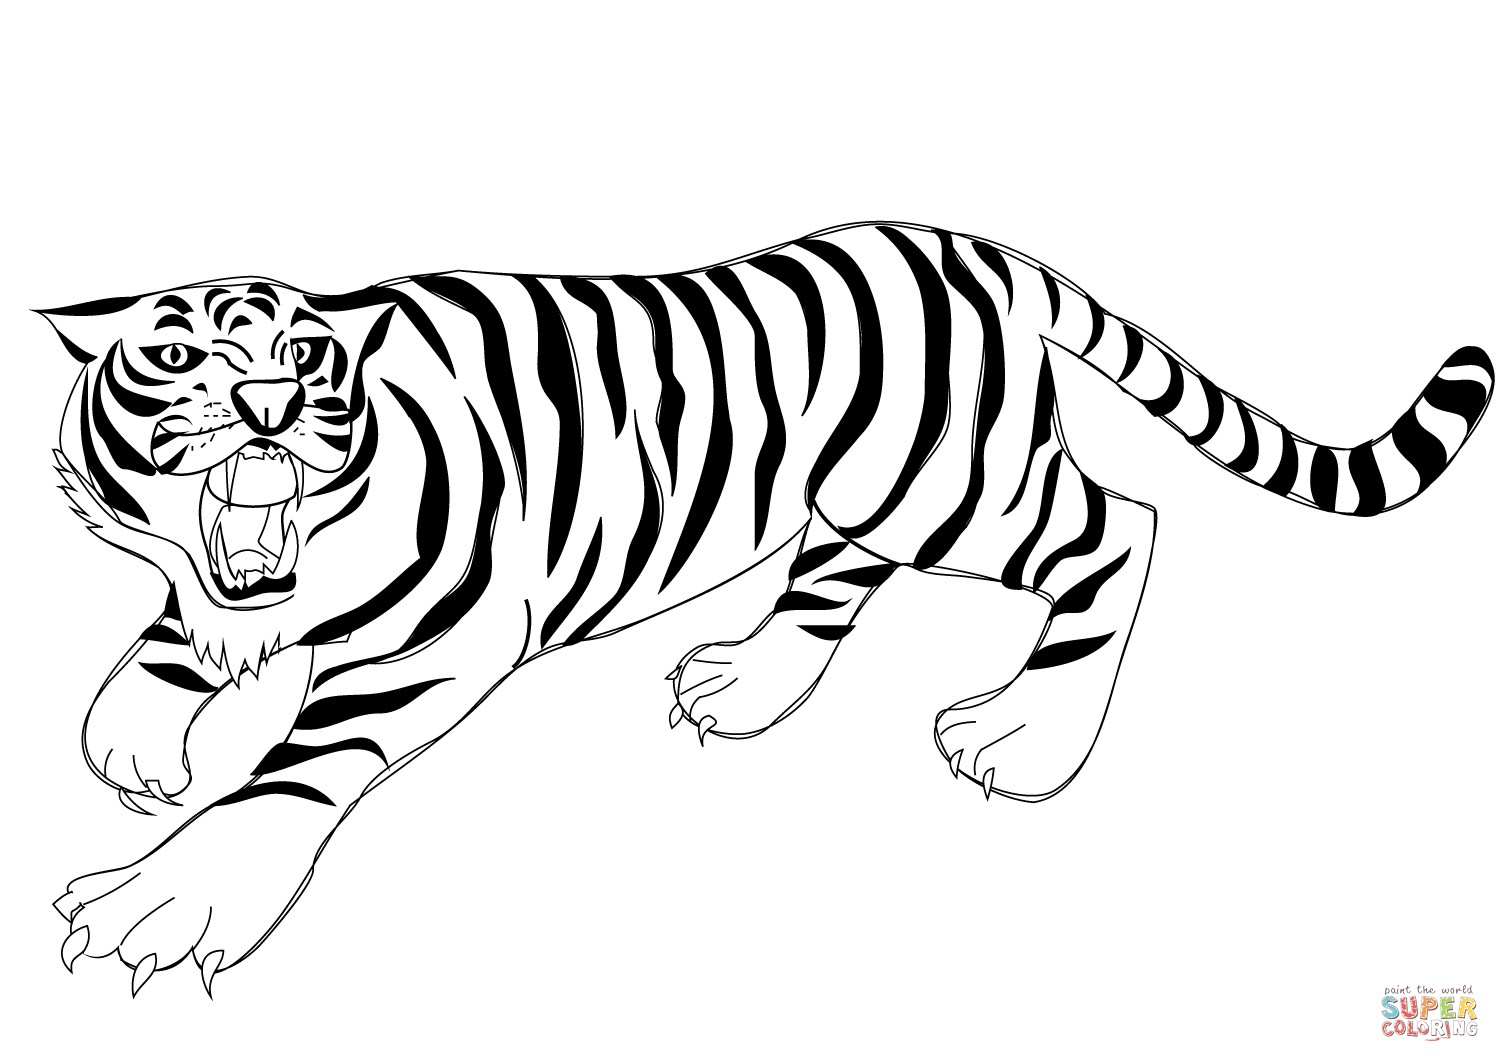 Tiger Roaring Drawing At Getdrawings